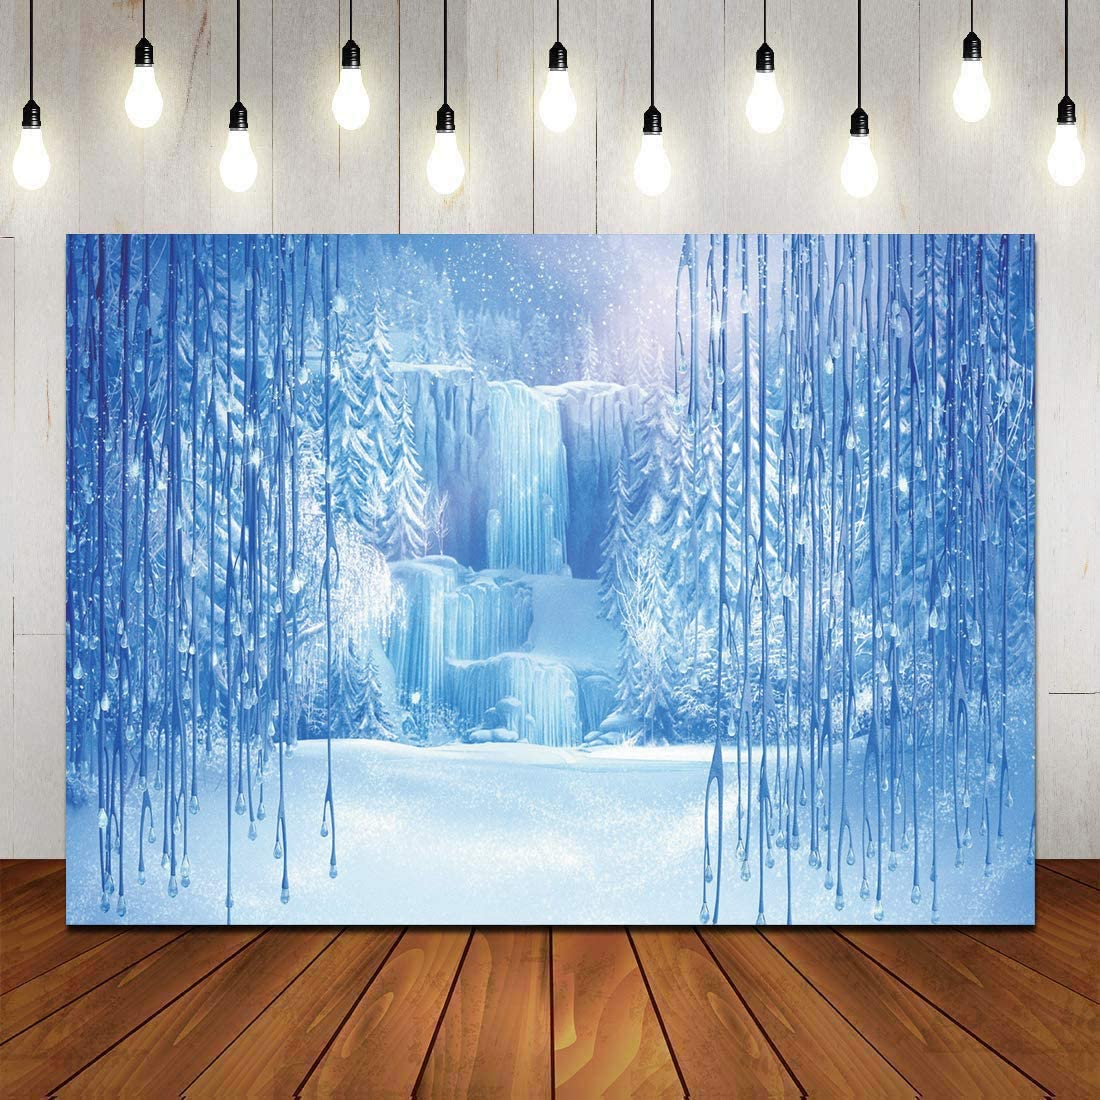 CYLYH 7x5ft Winter Backdrop Ice and Snow White World Photography Backdrops Christmas Winter Frozen Snow Ice Crystal Pendant World Backdrops for Children Dessert table decoration banner background D448